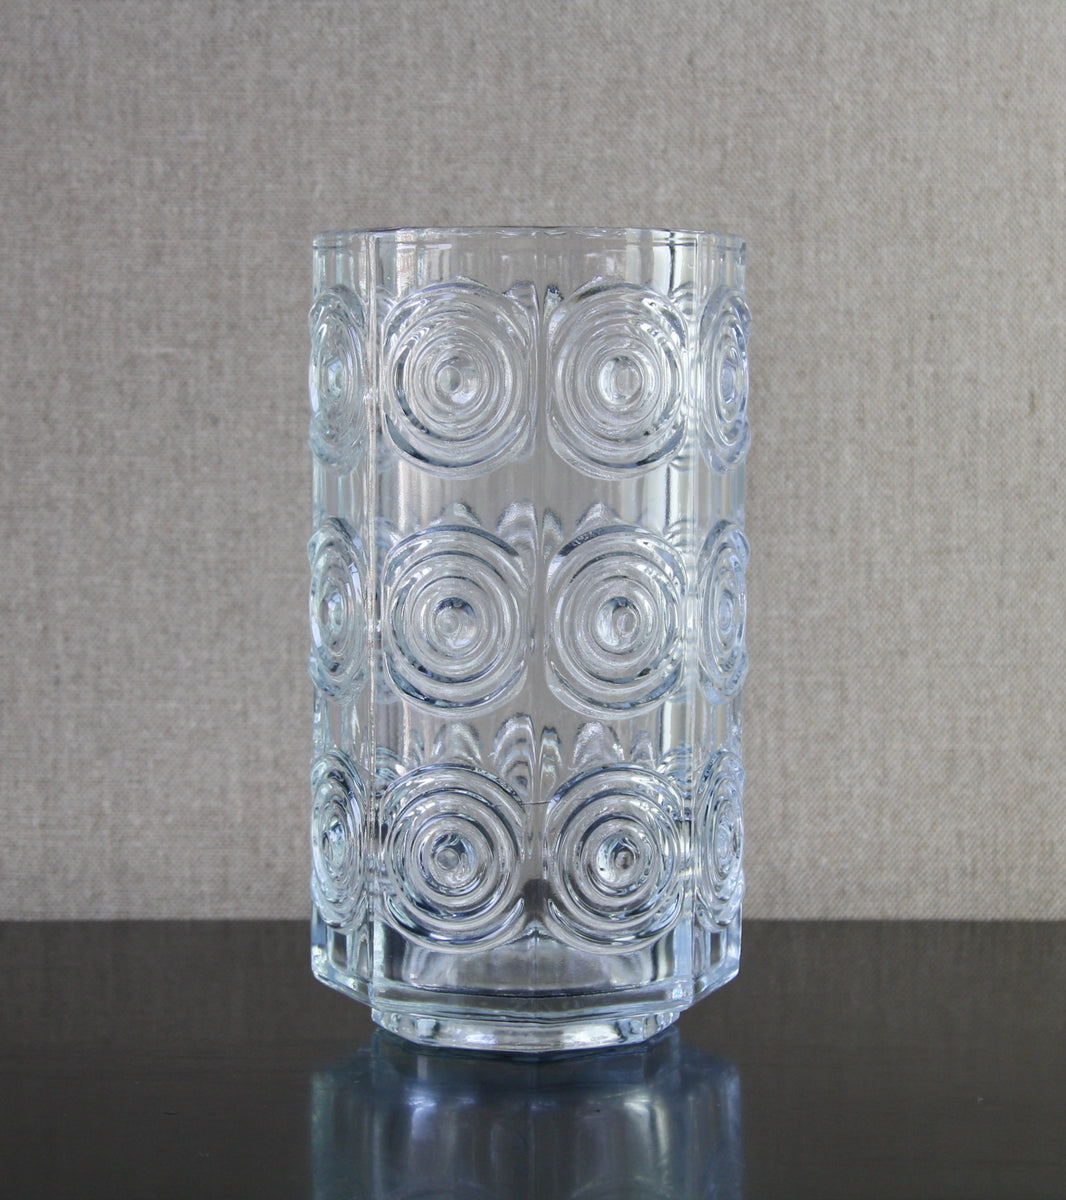 "Clear Model 5682 ""Rengas"" (Rings) Vase by Tamara Aladin, 1972"